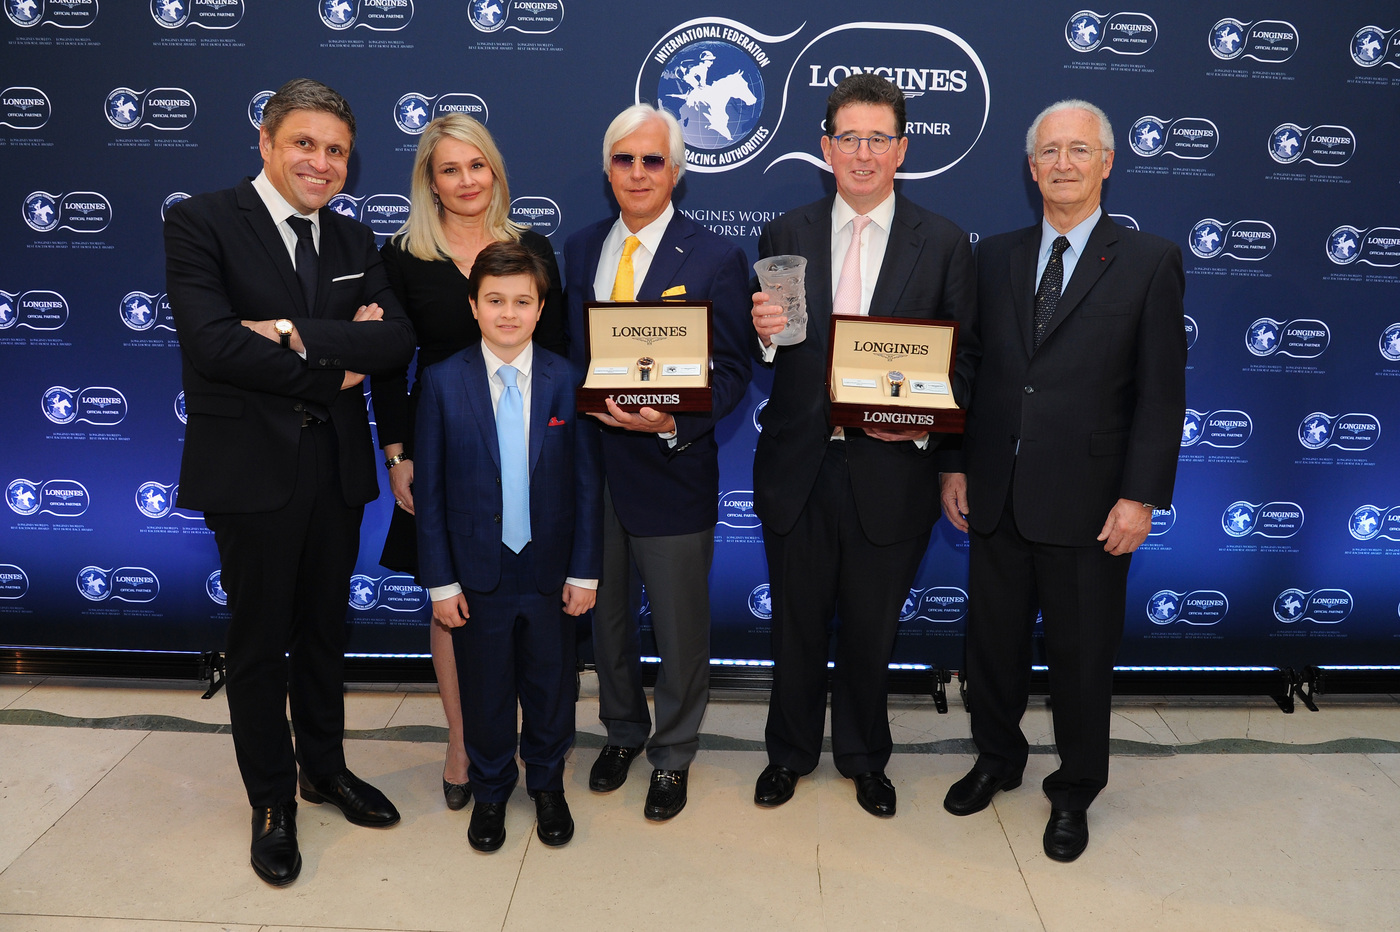 Longines Equestrian Event: Arrogate named the 2016 Longines World's Best Racehorse, while the Breeders' Cup Classic was crowned 2016 Longines World's Best Horse Race 1